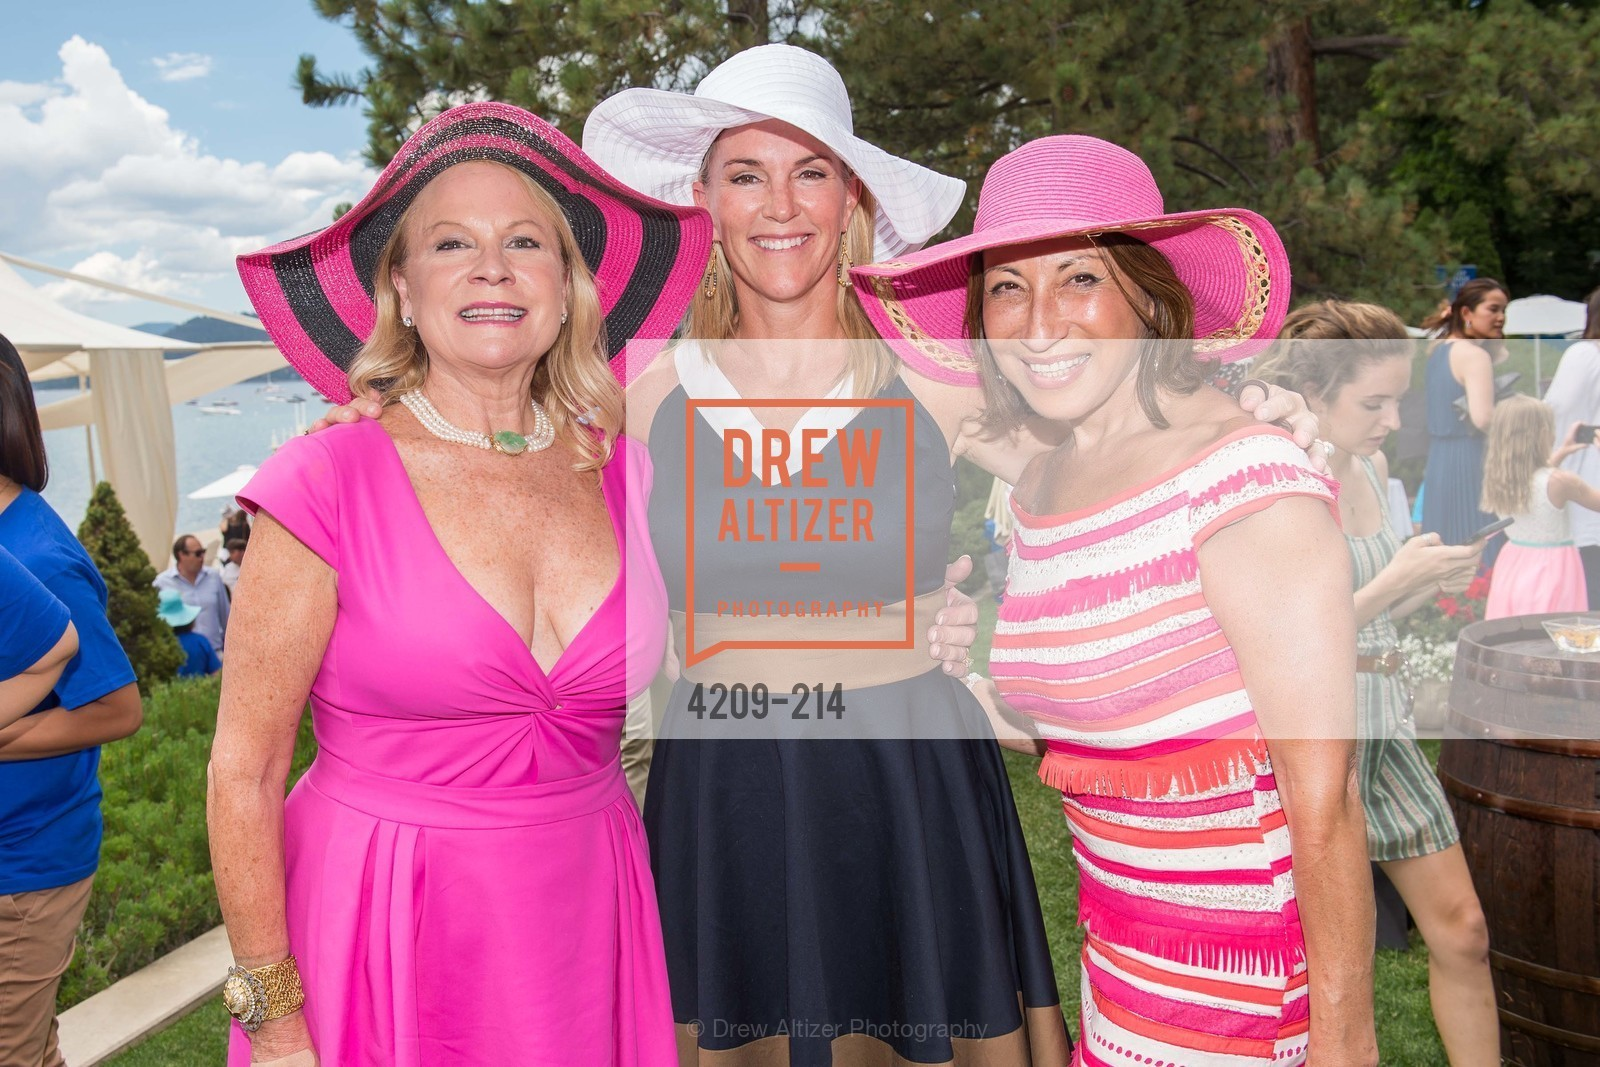 Claire Kostic, Deborah Keane, Cathy Goodman, Saks Fifth Avenue and The League to Save Lake Tahoe Present Fashion on the Lake, Private Residence, August 1st, 2015,Drew Altizer, Drew Altizer Photography, full-service agency, private events, San Francisco photographer, photographer california